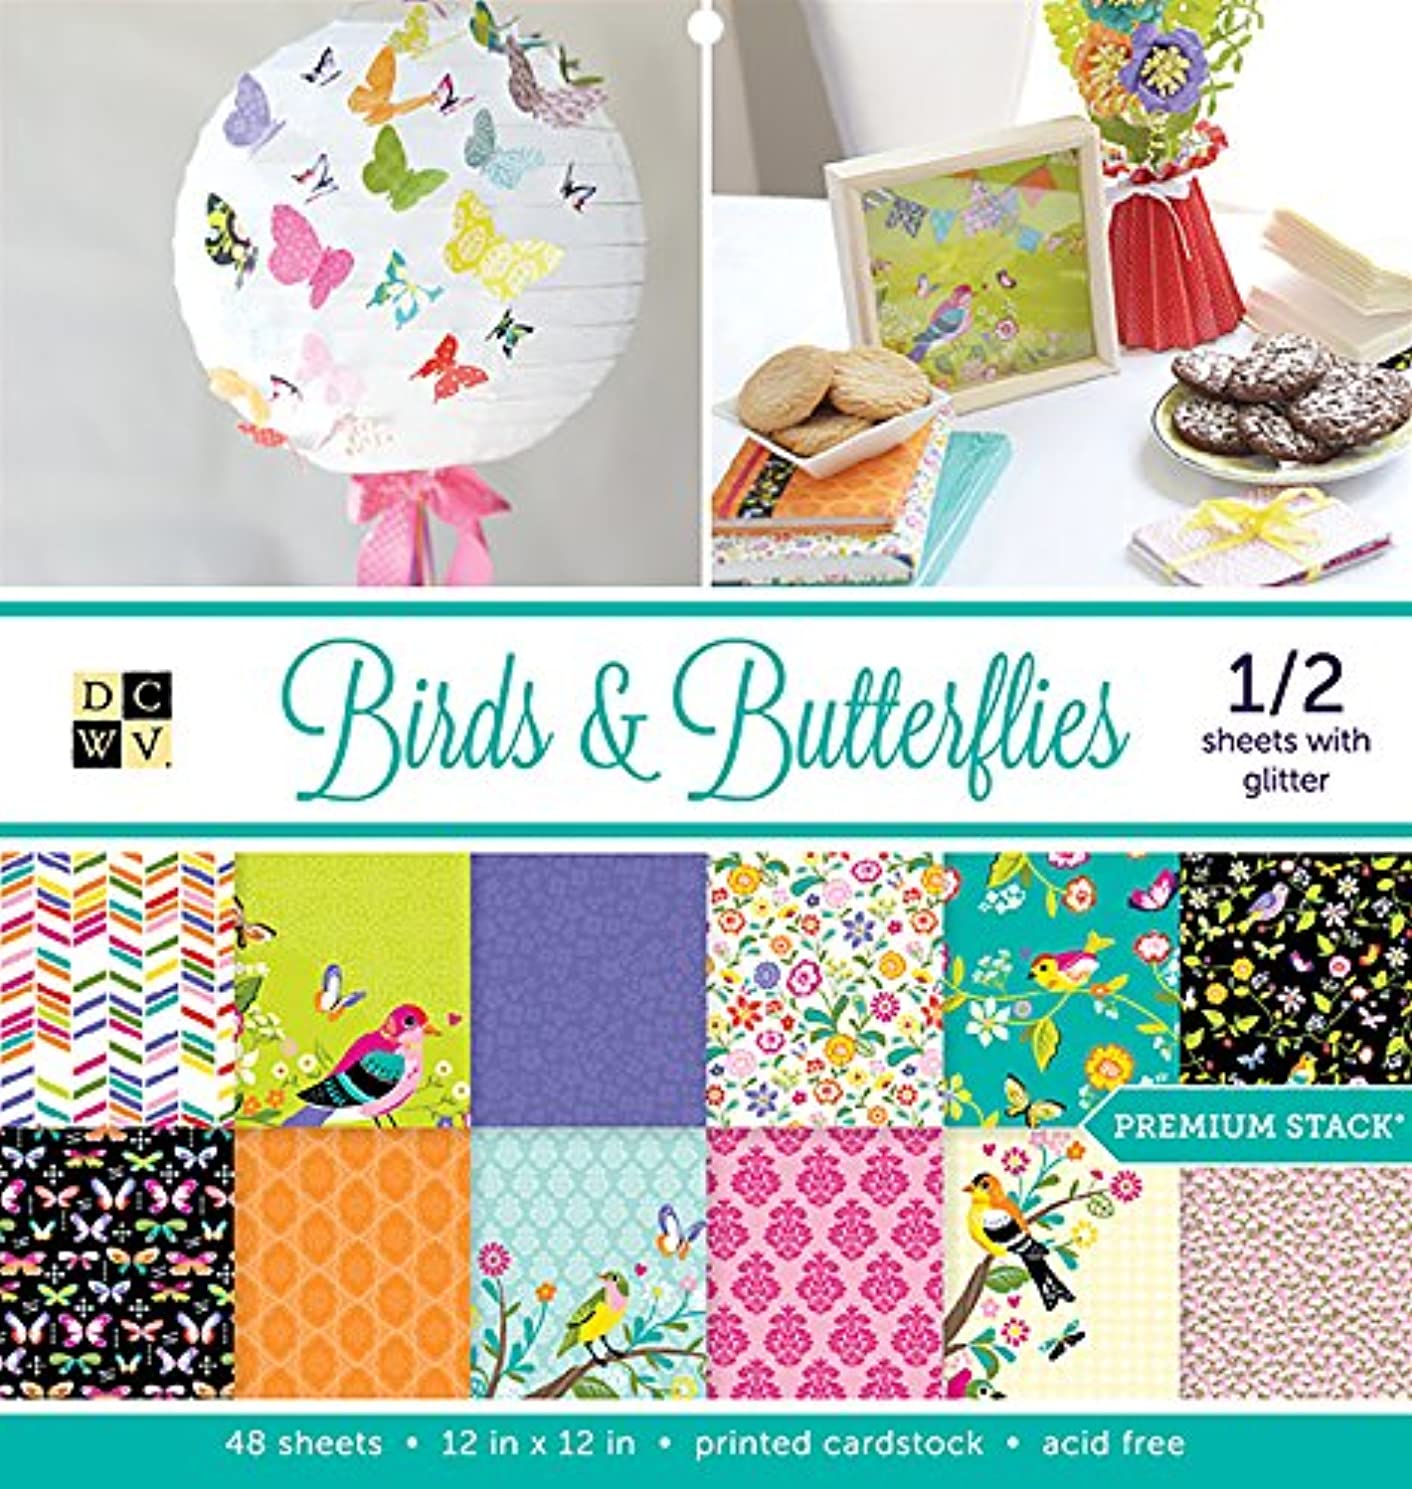 American Crafts 12 x 12 Inch Birds & Butterflies 48 Sheets Die Cuts with a View Stacks, 12